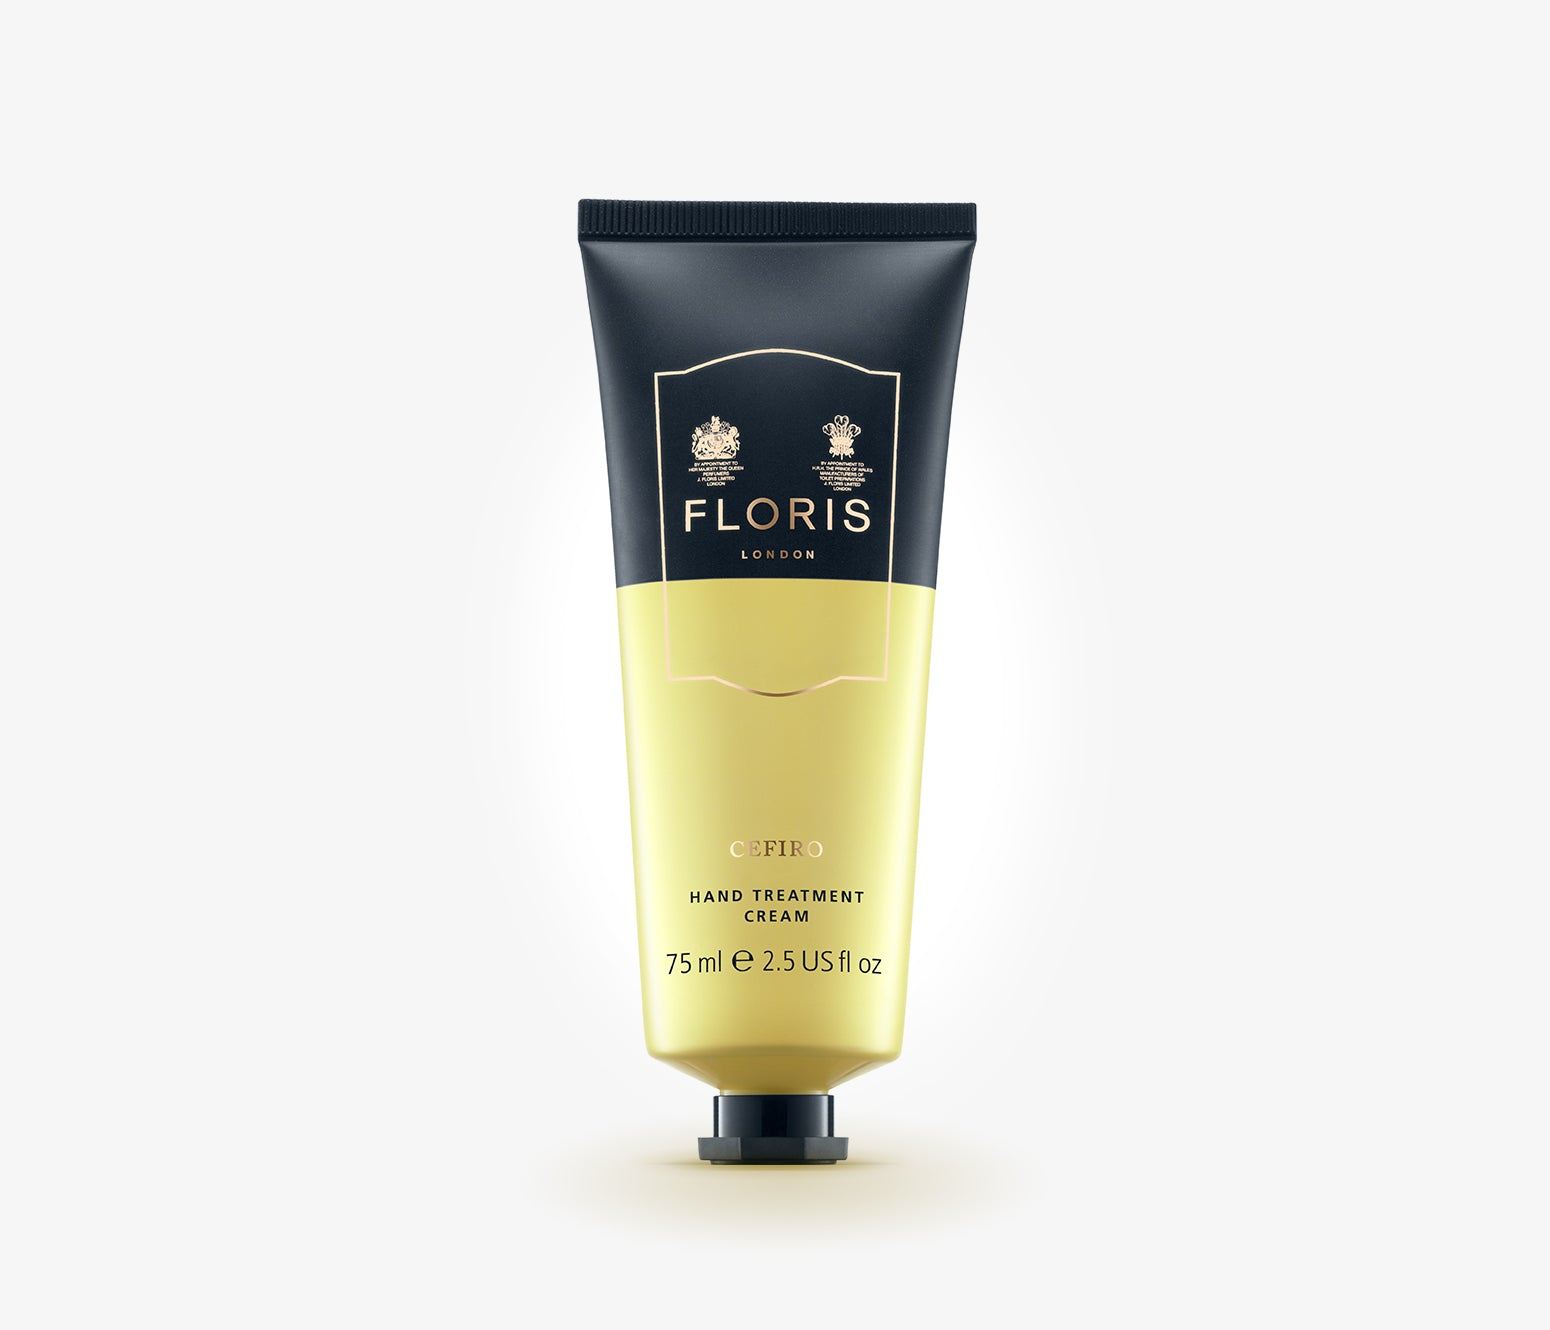 Floris - Cefiro Hand Cream - 75ml - OGF002 - product image - Hand Cream - Les Senteurs